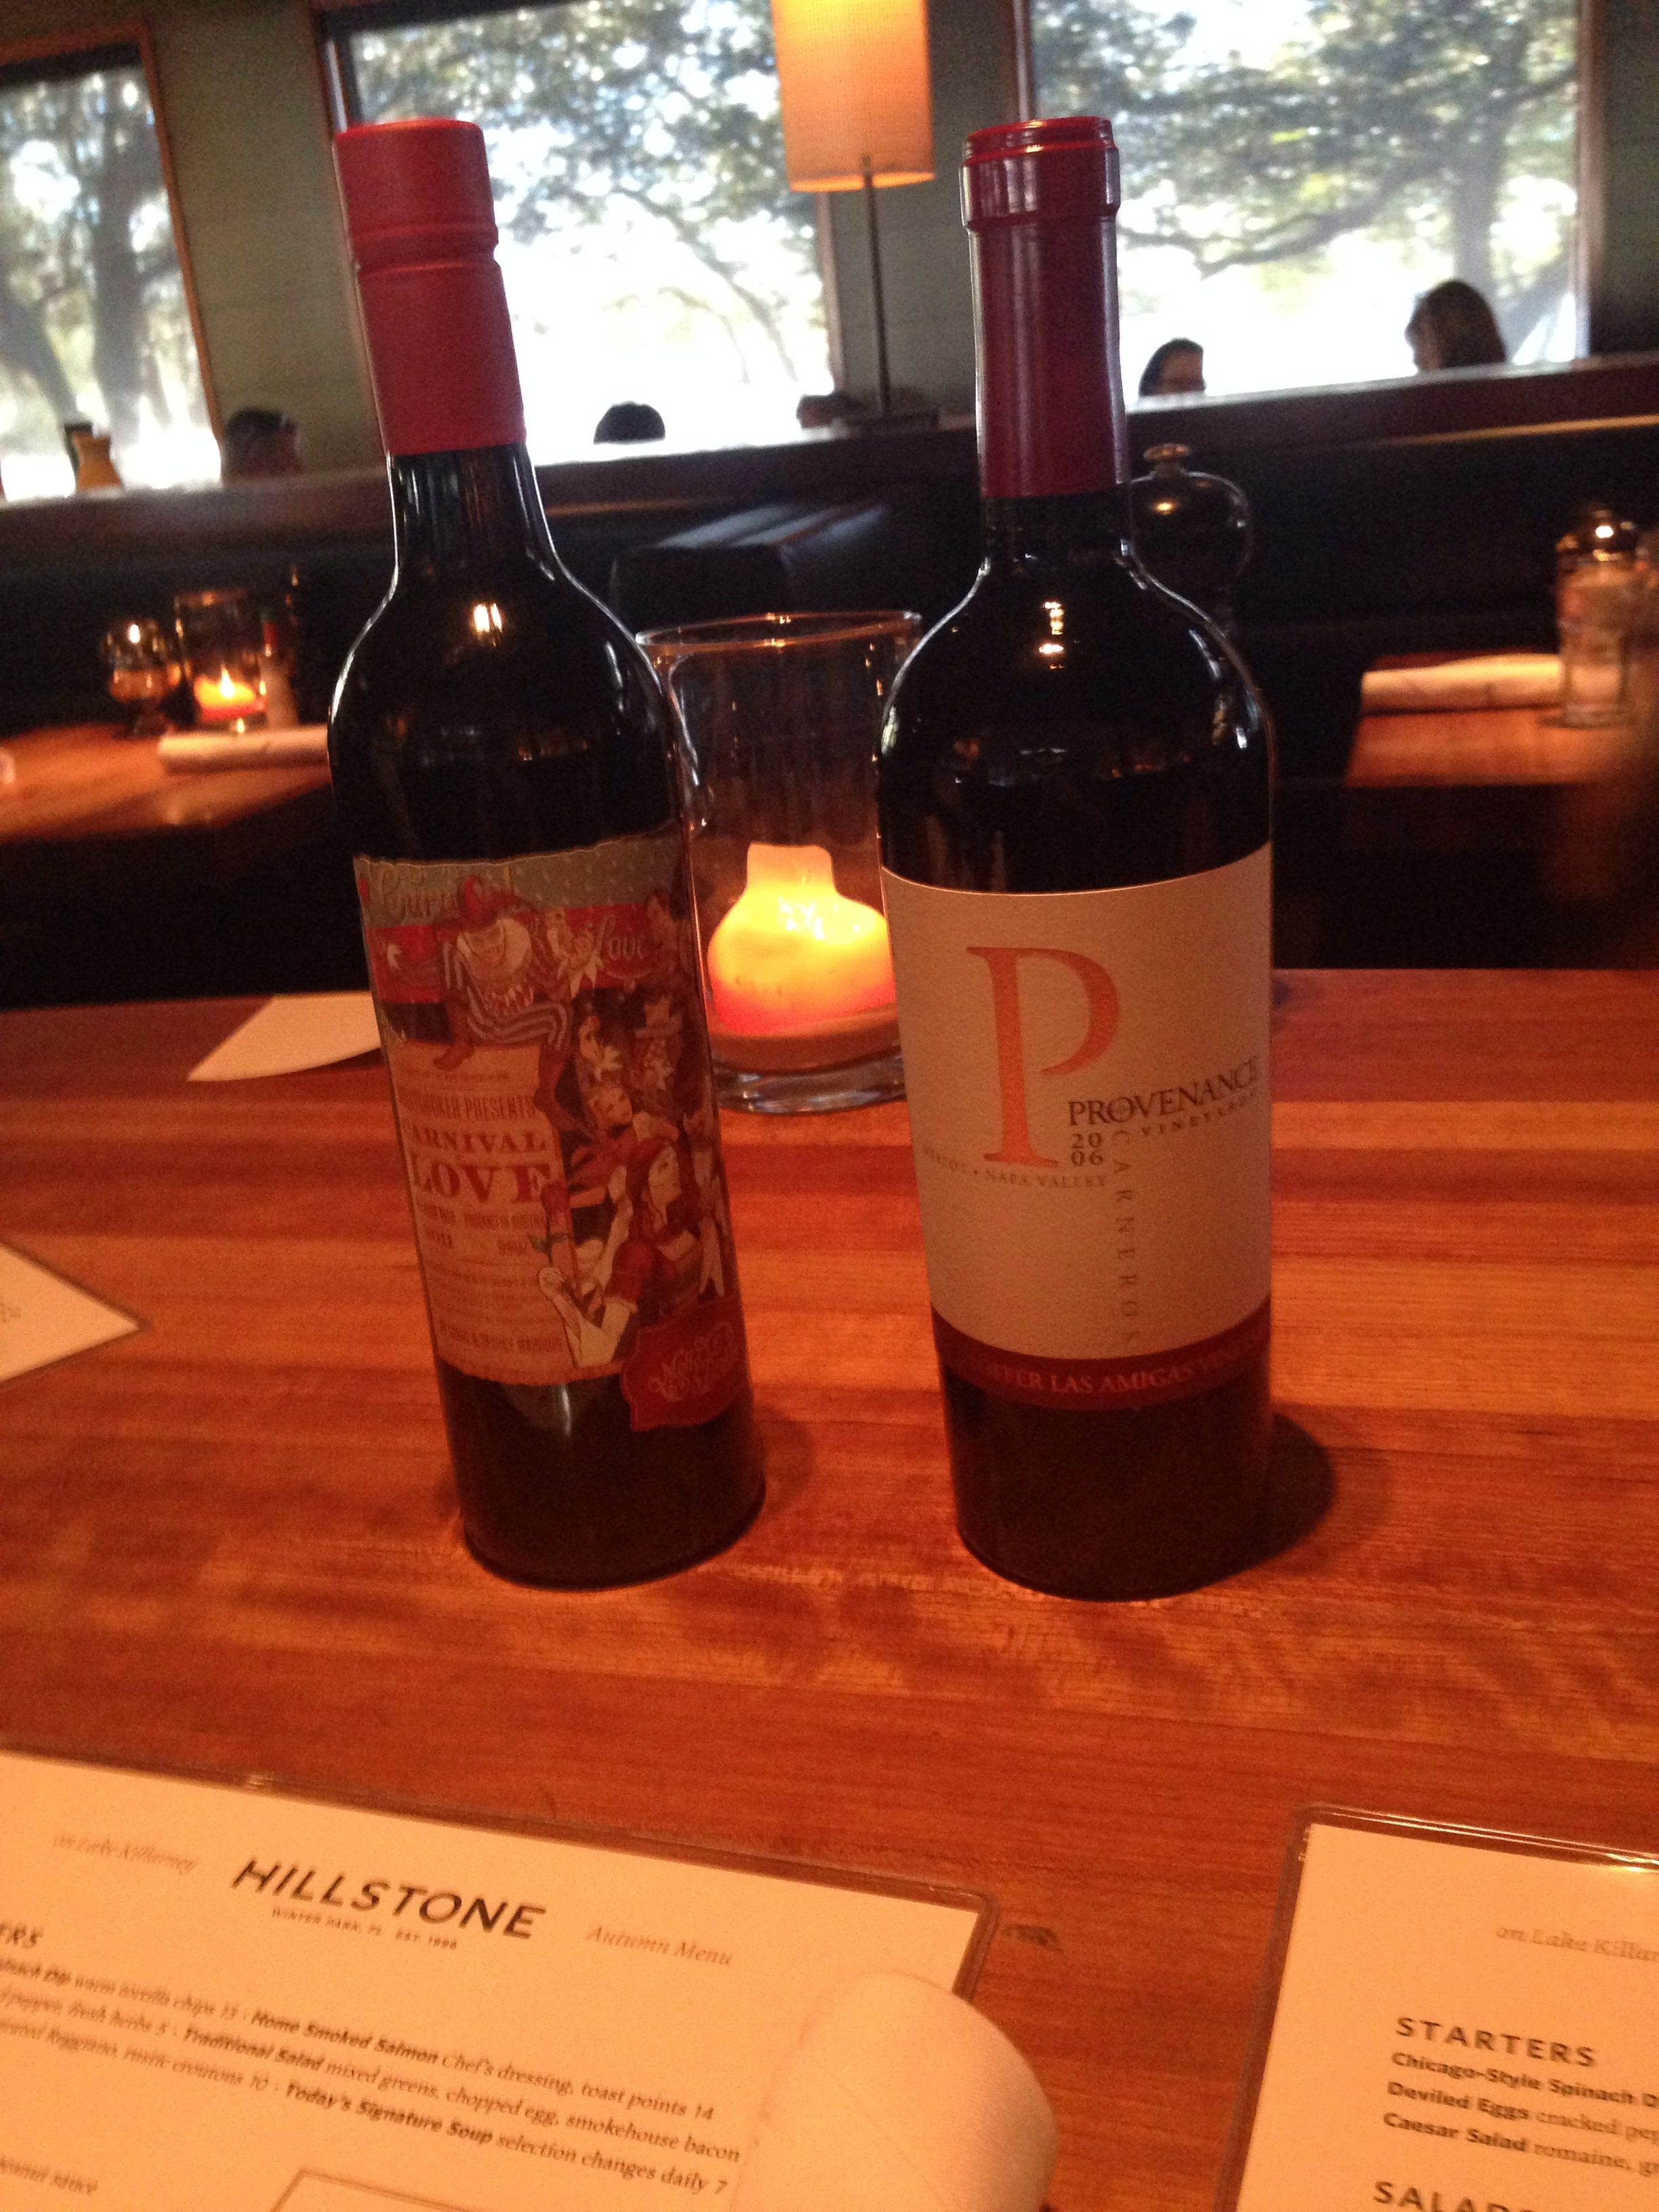 Dinner At Hillstone With 2006 Provenance Merlot And 2011 Enchanted Path Hot Spot Wine Bottle Bottle